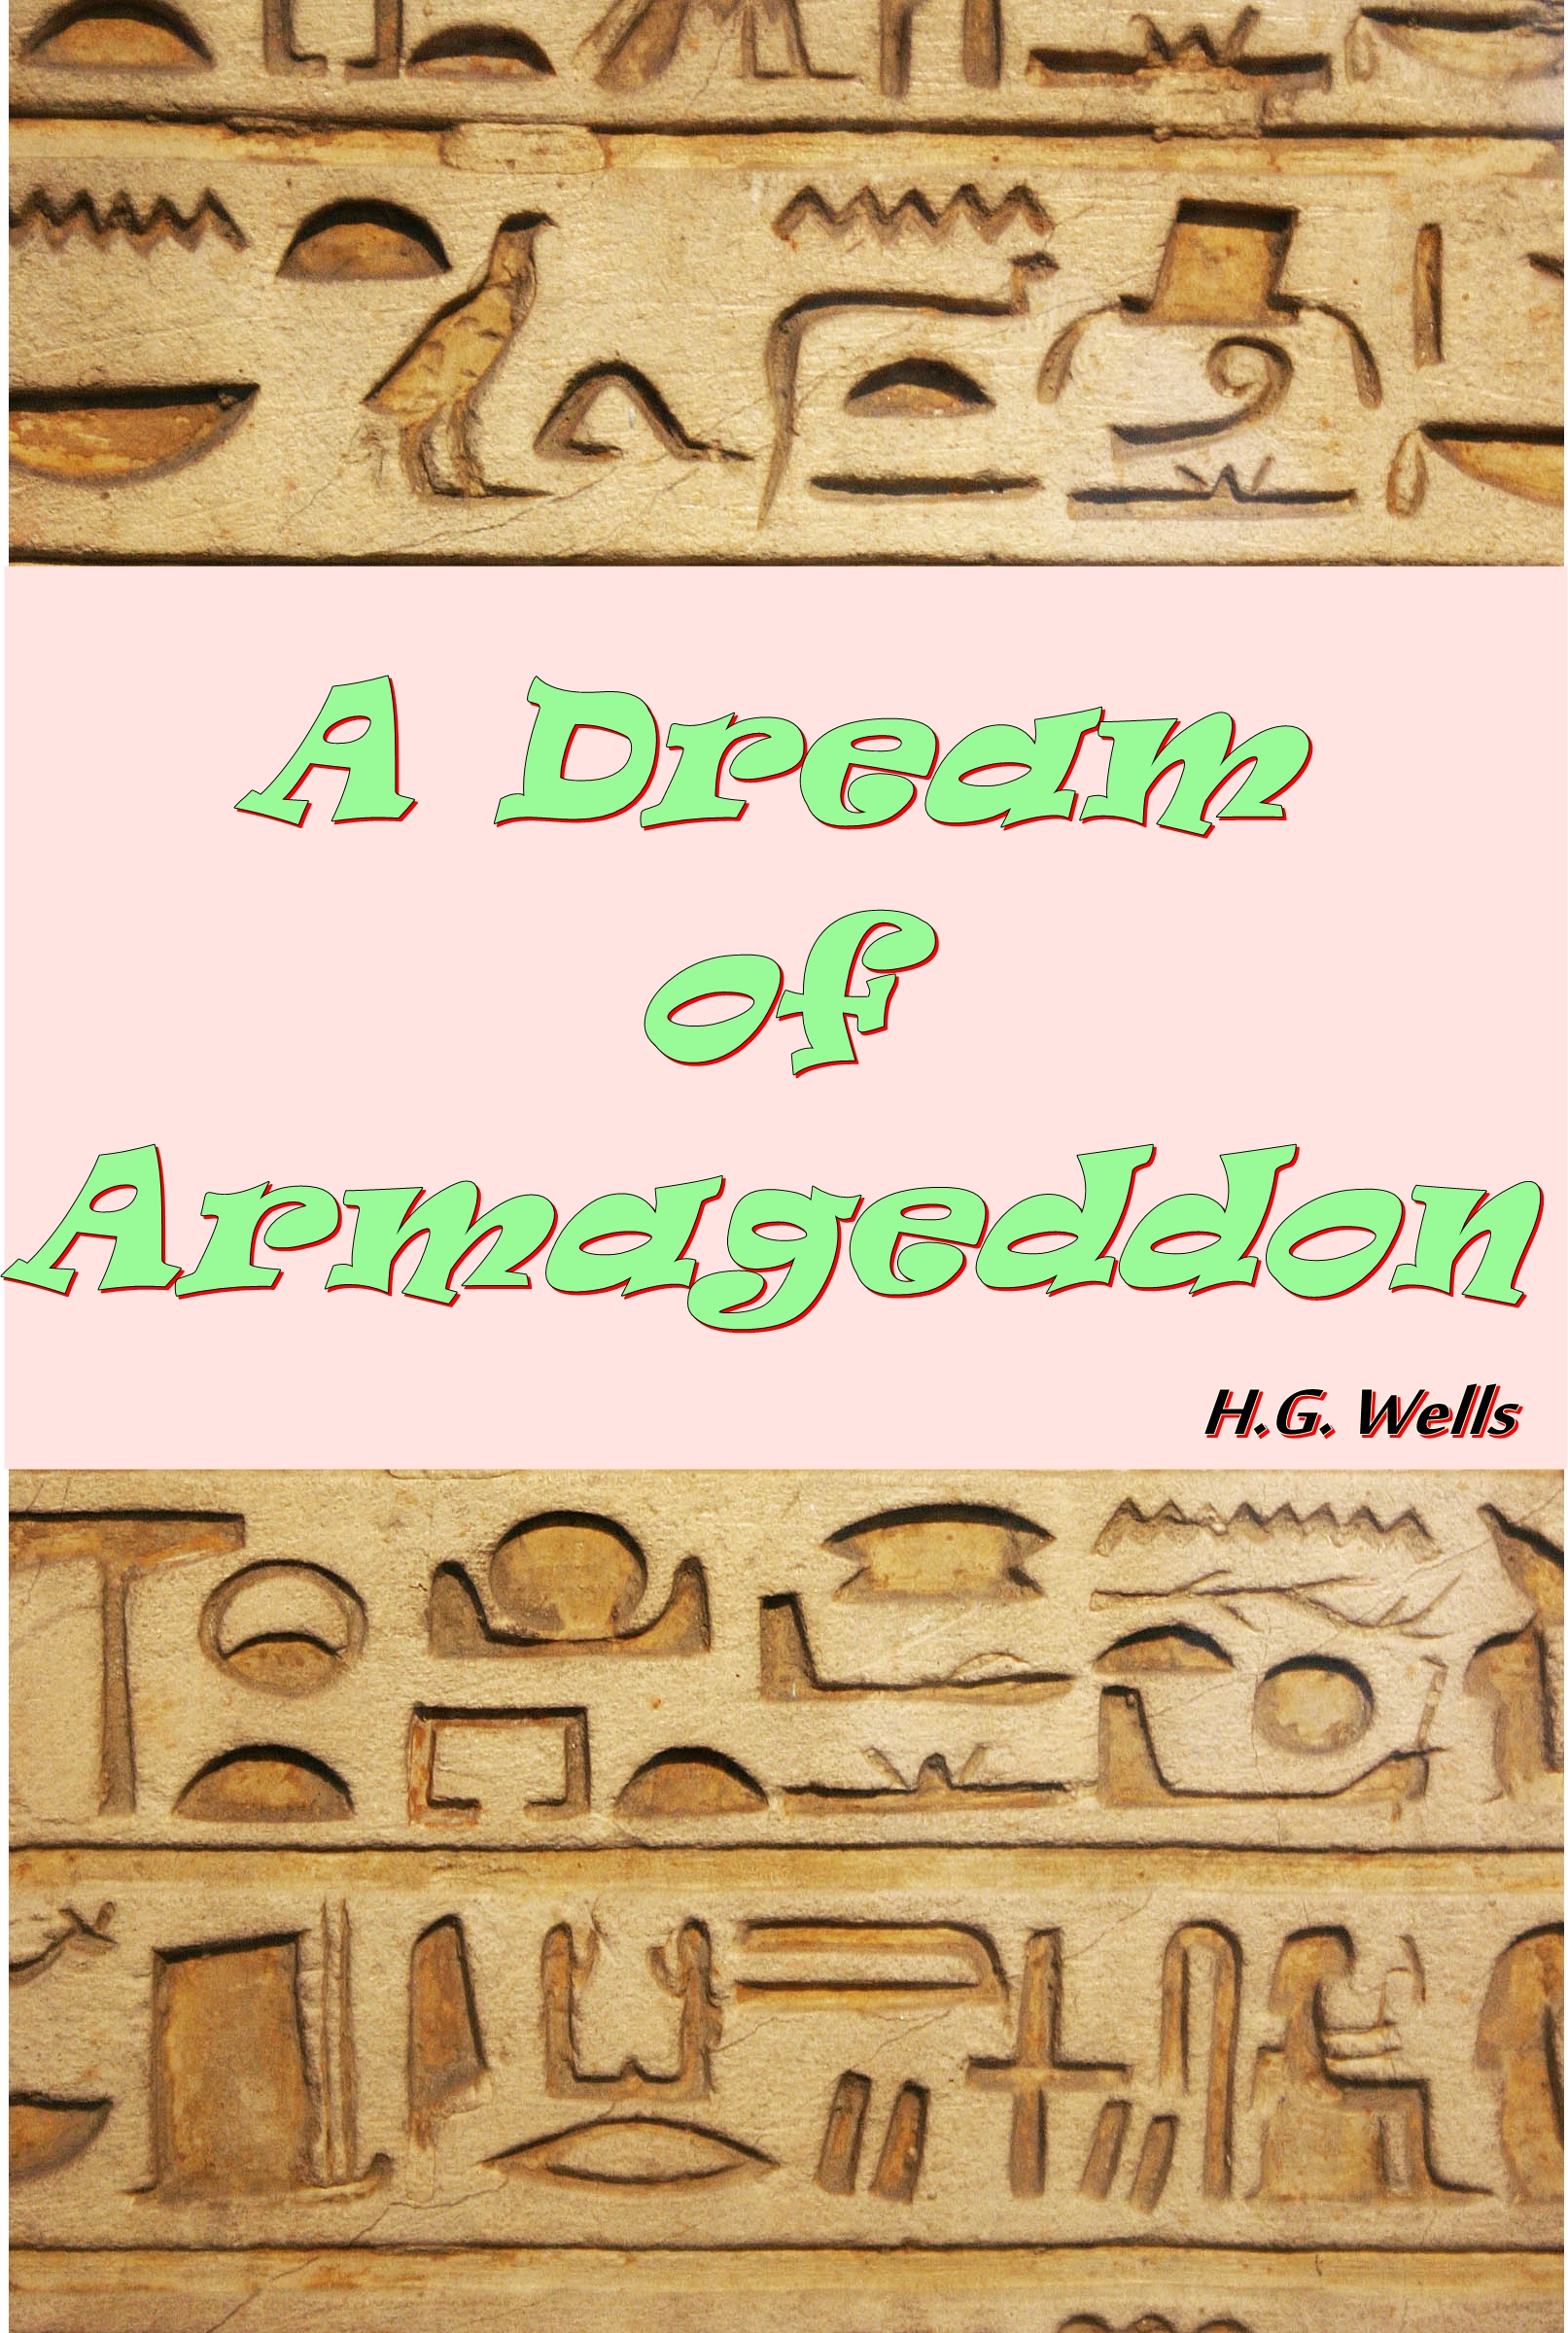 H.G. Wells - A Dream of Armageddon [The Best Classic Fiction ]